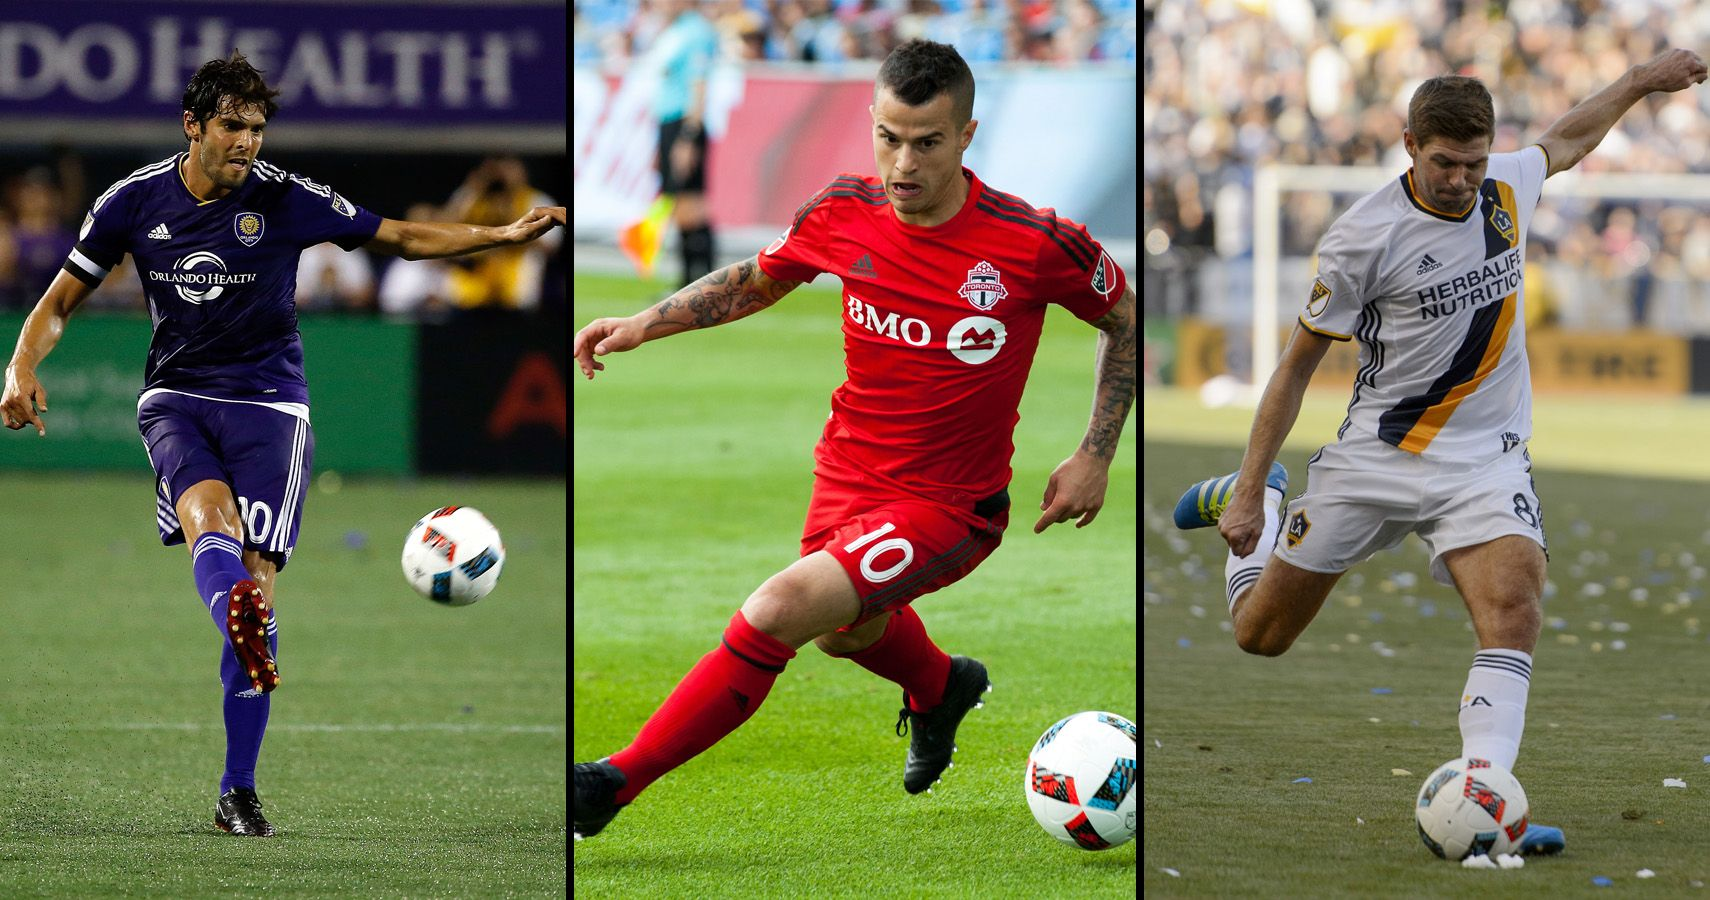 Top 20 Highest Paid MLS Players in 2016